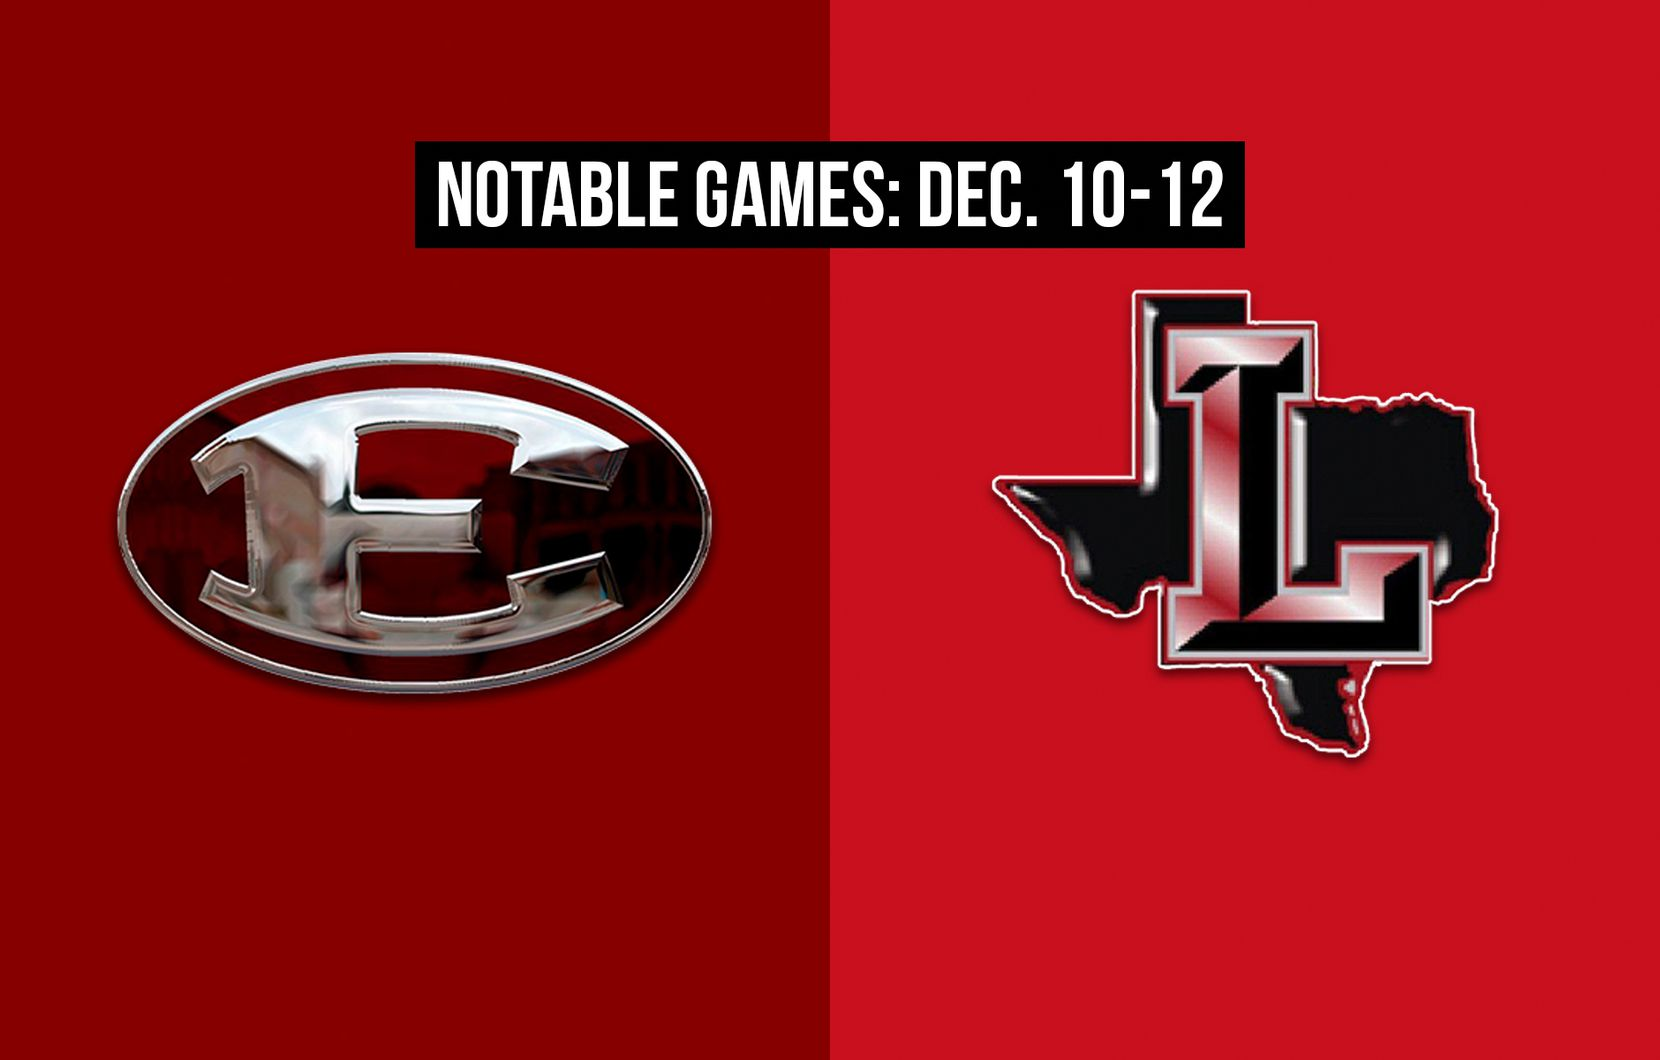 Notable games for the week of Dec. 10-12 of the 2020 season: Ennis vs. Frisco Liberty.